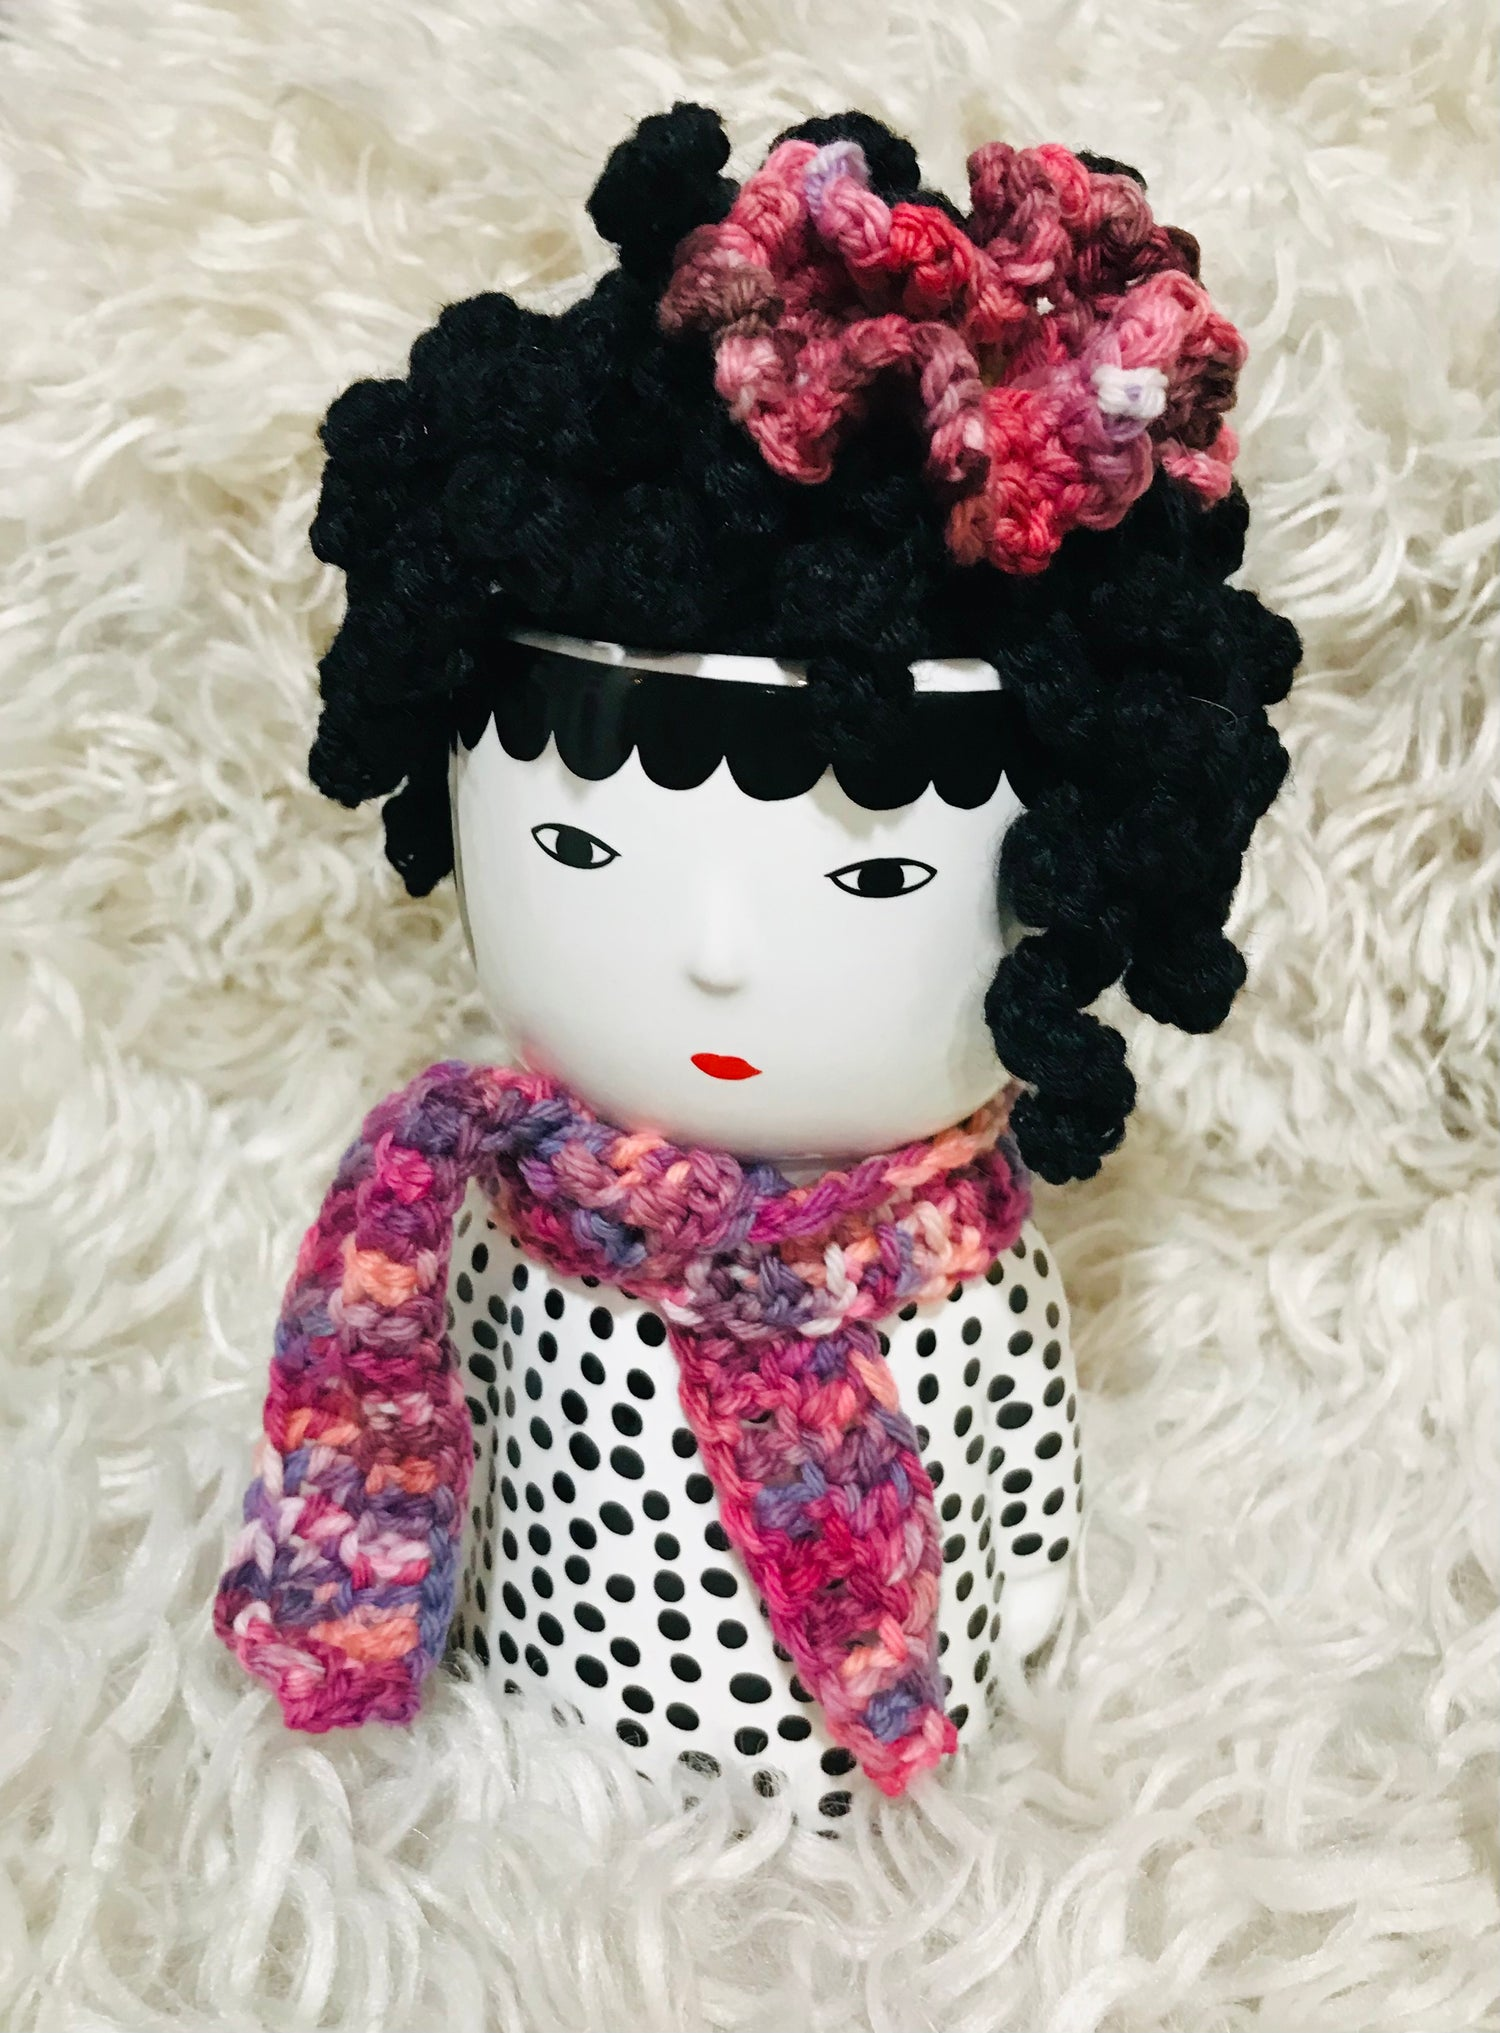 Image of Poppy the Doll